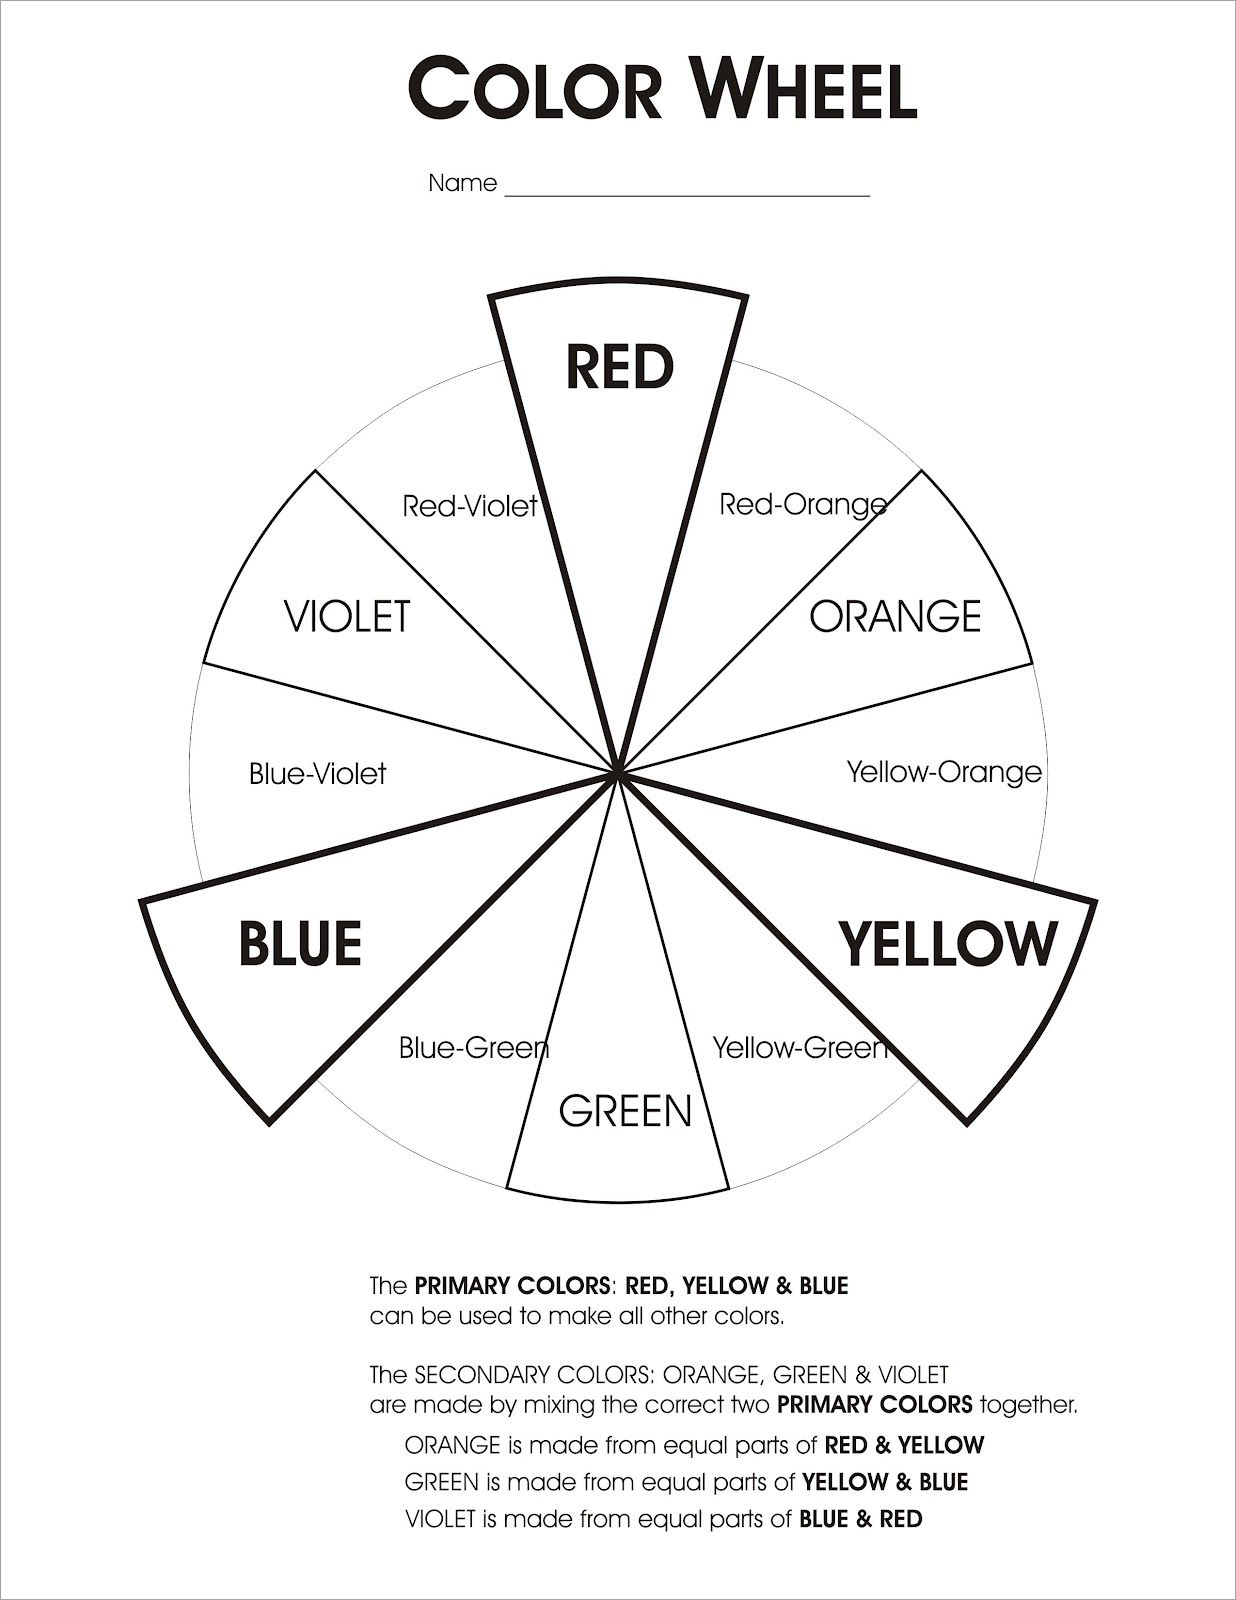 Blank Color Wheel Chart Worksheet color scheme worksheet worksheets ...